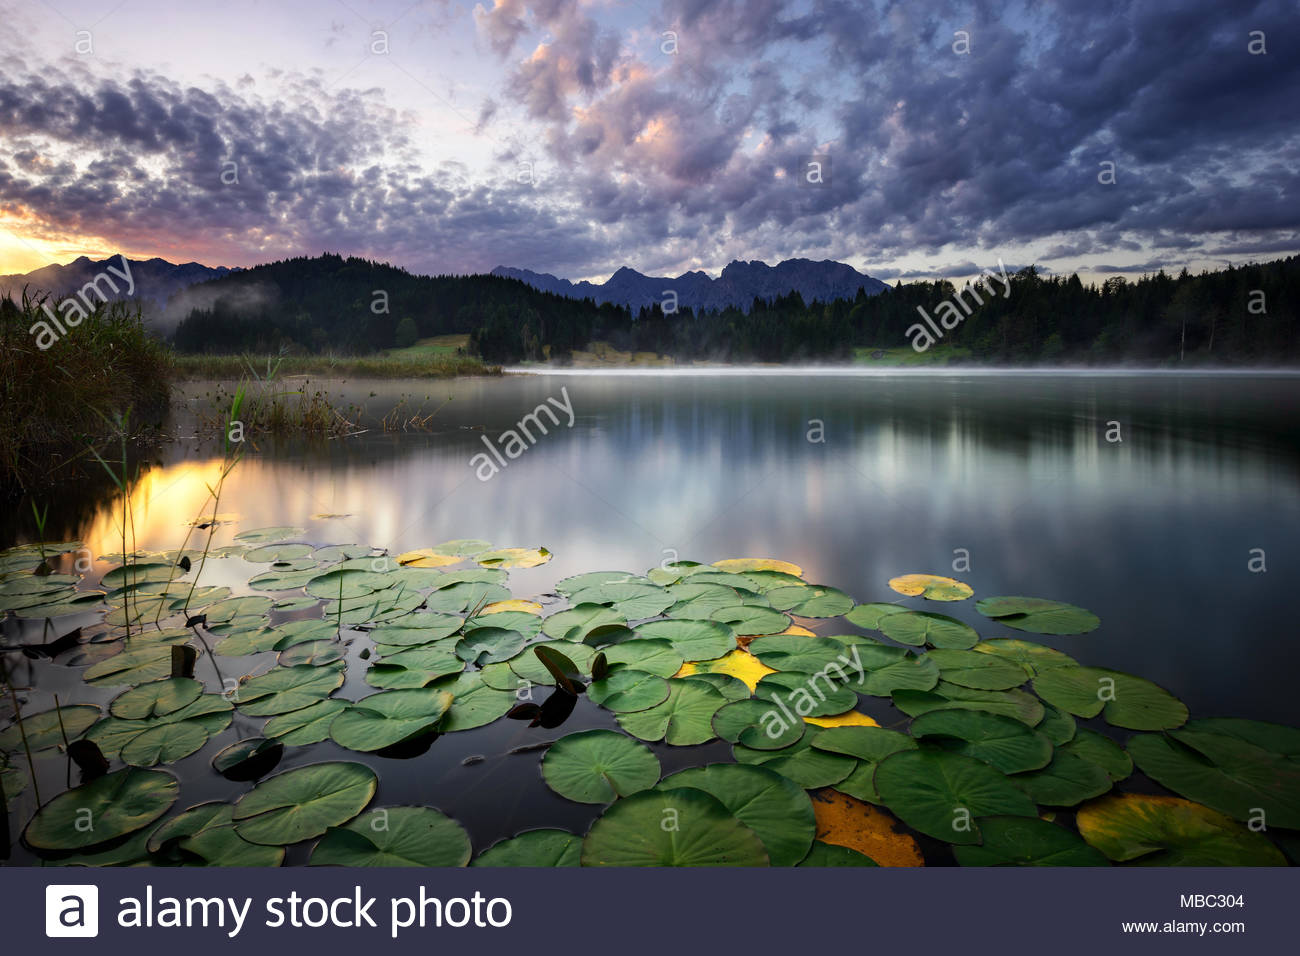 Geroldsee view during autumn with foggy sunrise. Colorful cloudy sky and lake reflection in mountains. Bavarian Alps, Bavaria, Germany. - Stock Image